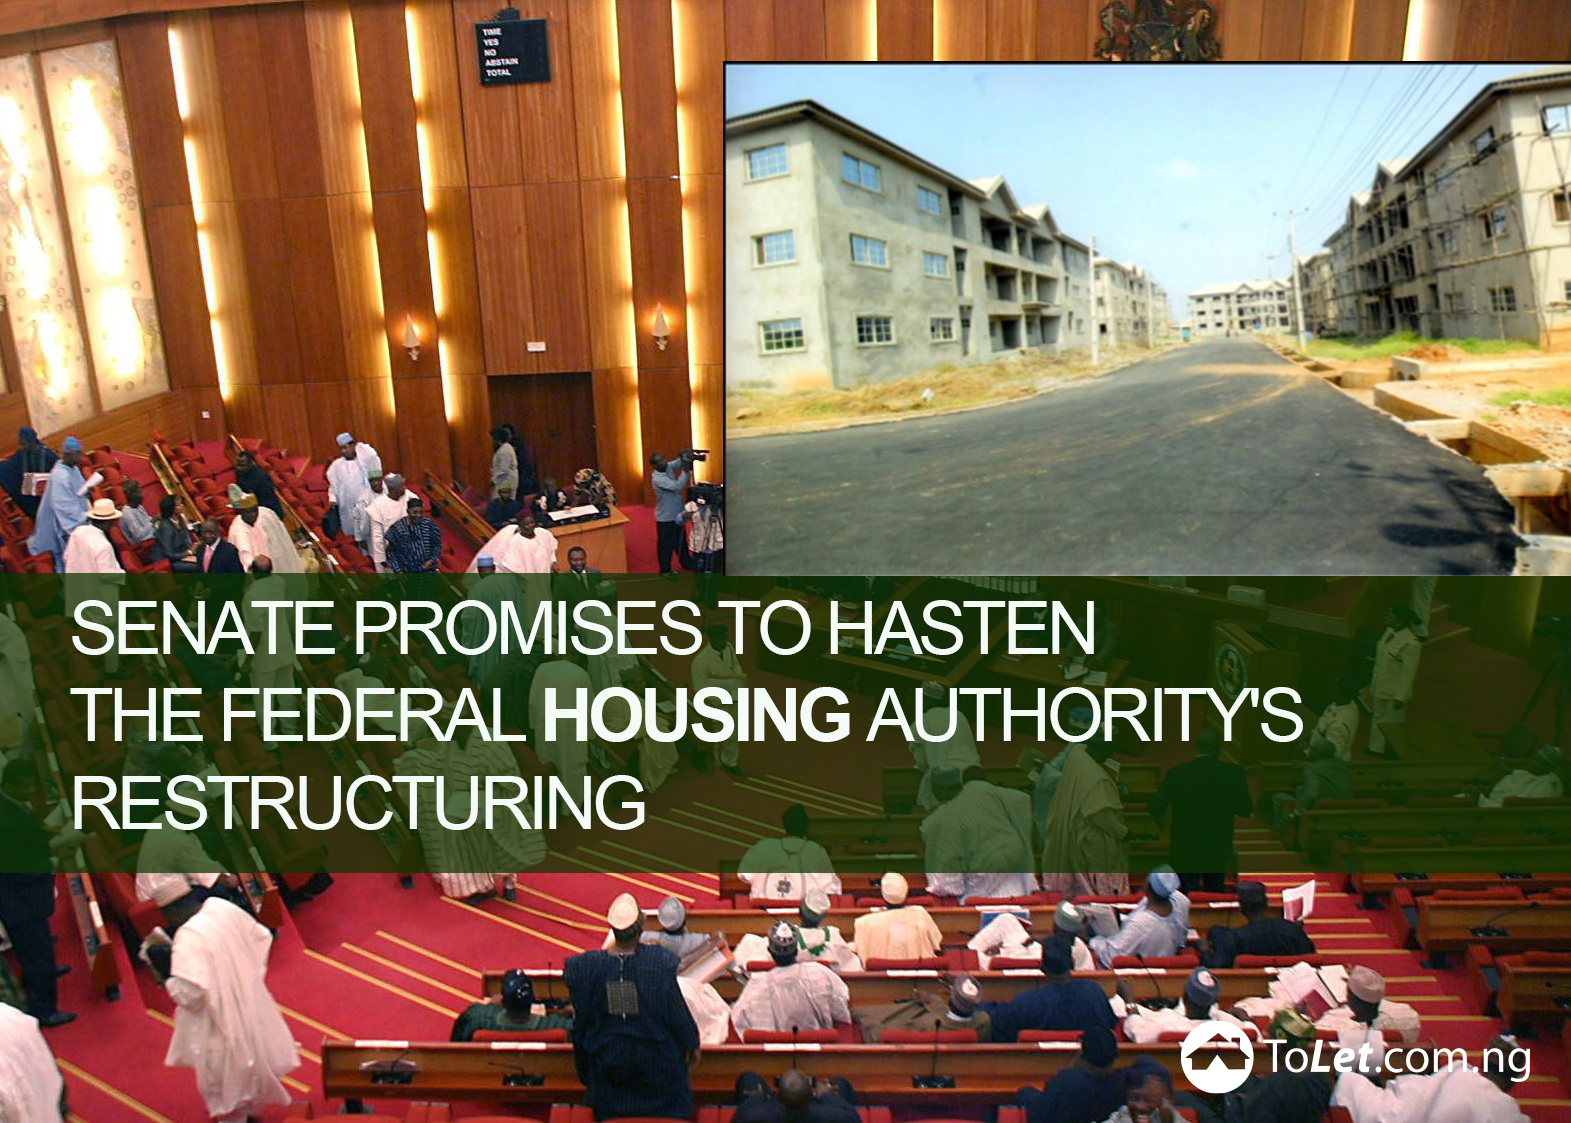 Senate Promises to Hasten the FHA's Restructuring